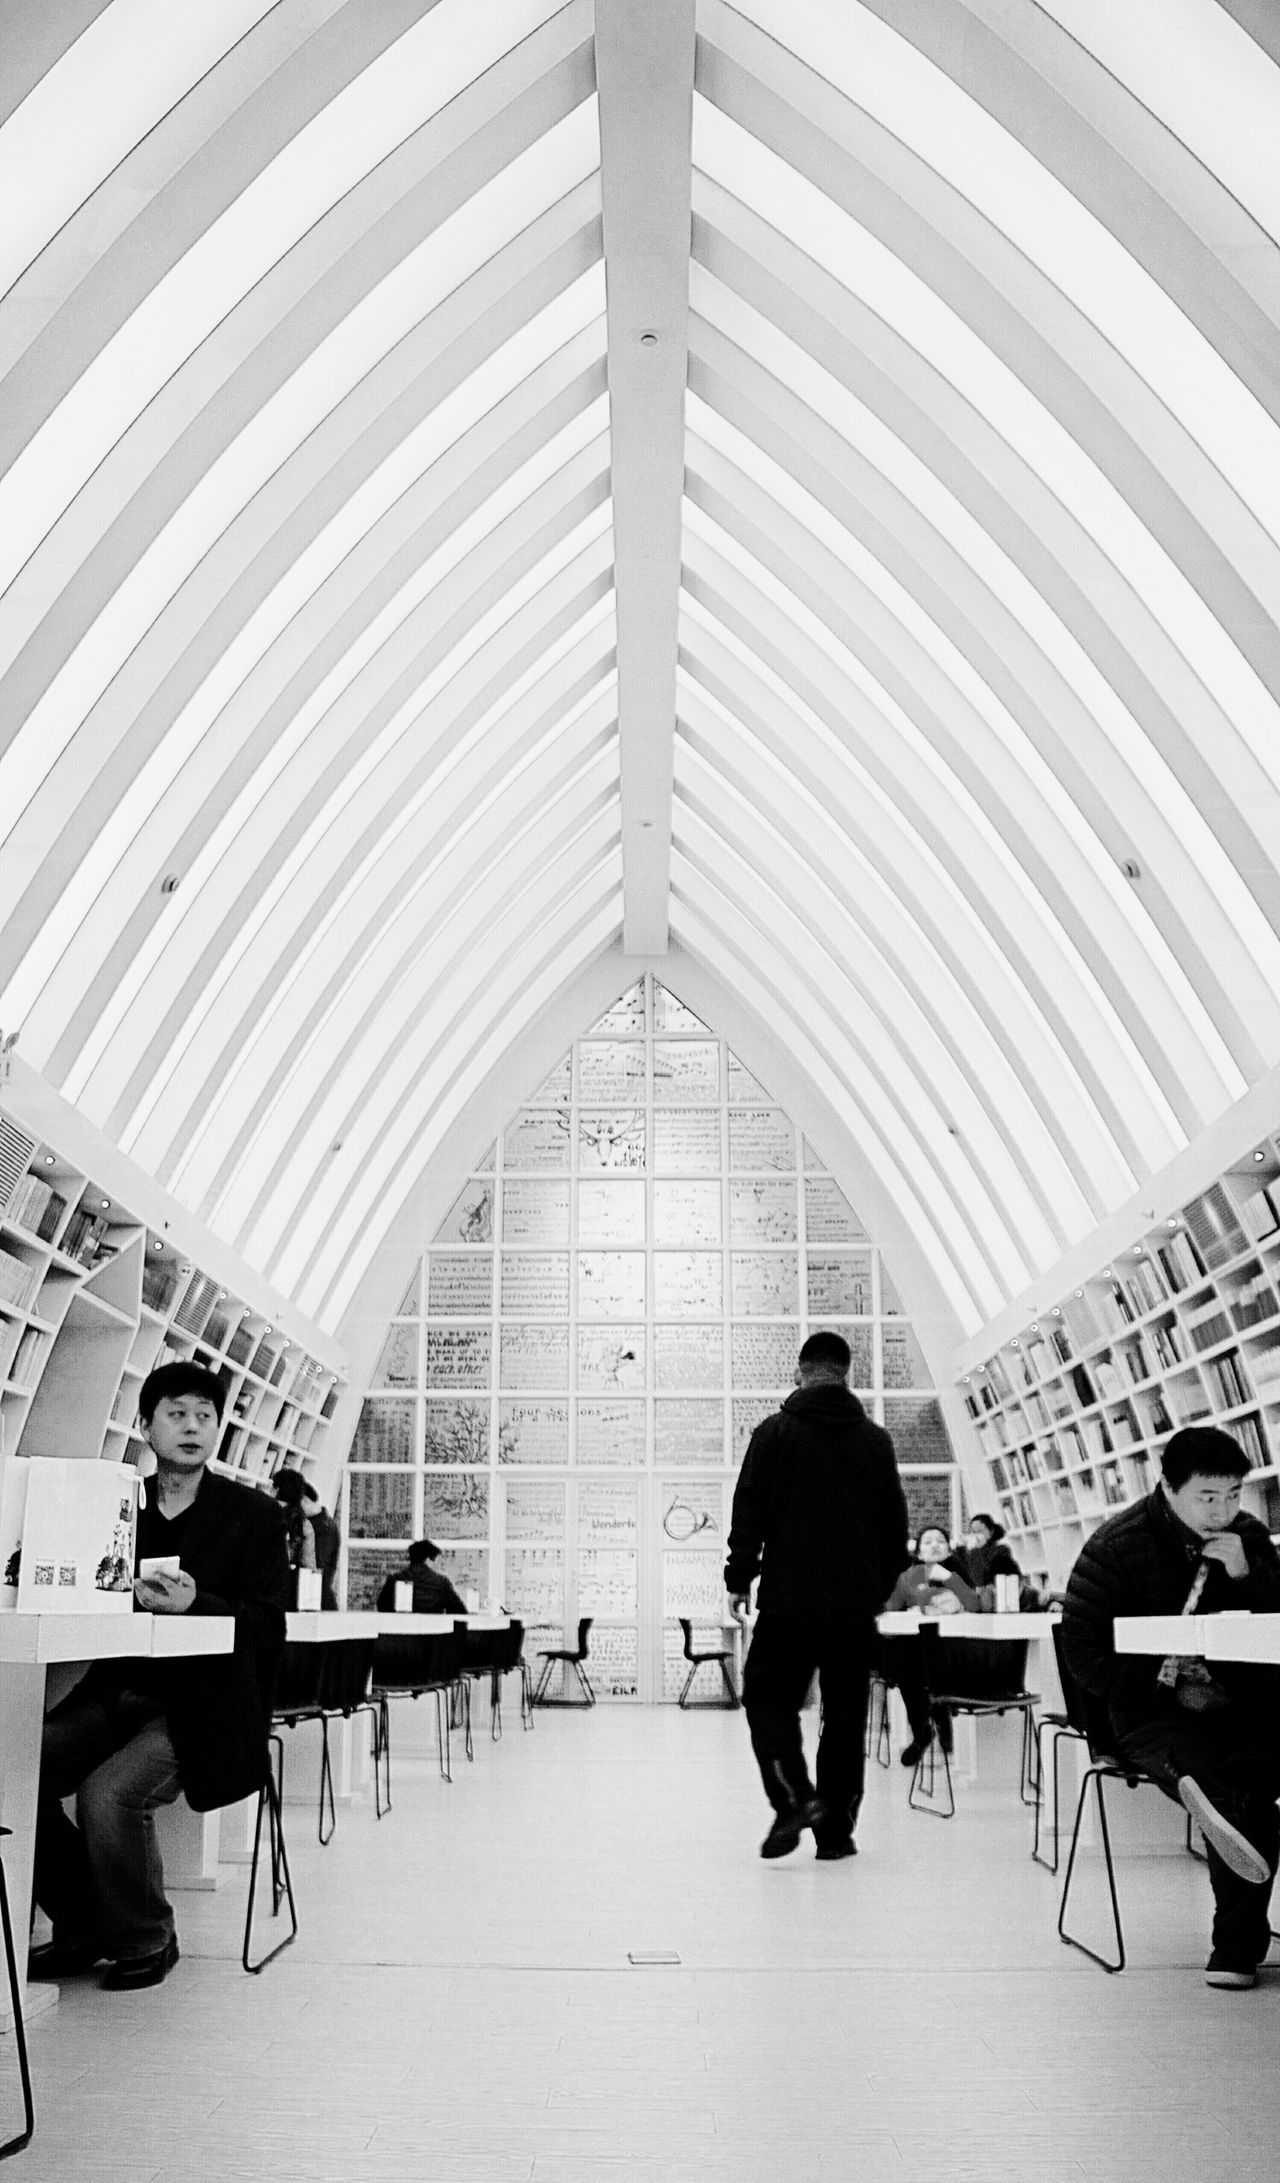 Architecture Symmetry Symmetrical Shapes And Lines Black And White Black & White Black And White Photography Shapes And Patterns  Shapes And Forms In The Room People Reading Reading Library Knowledge Is Power Study